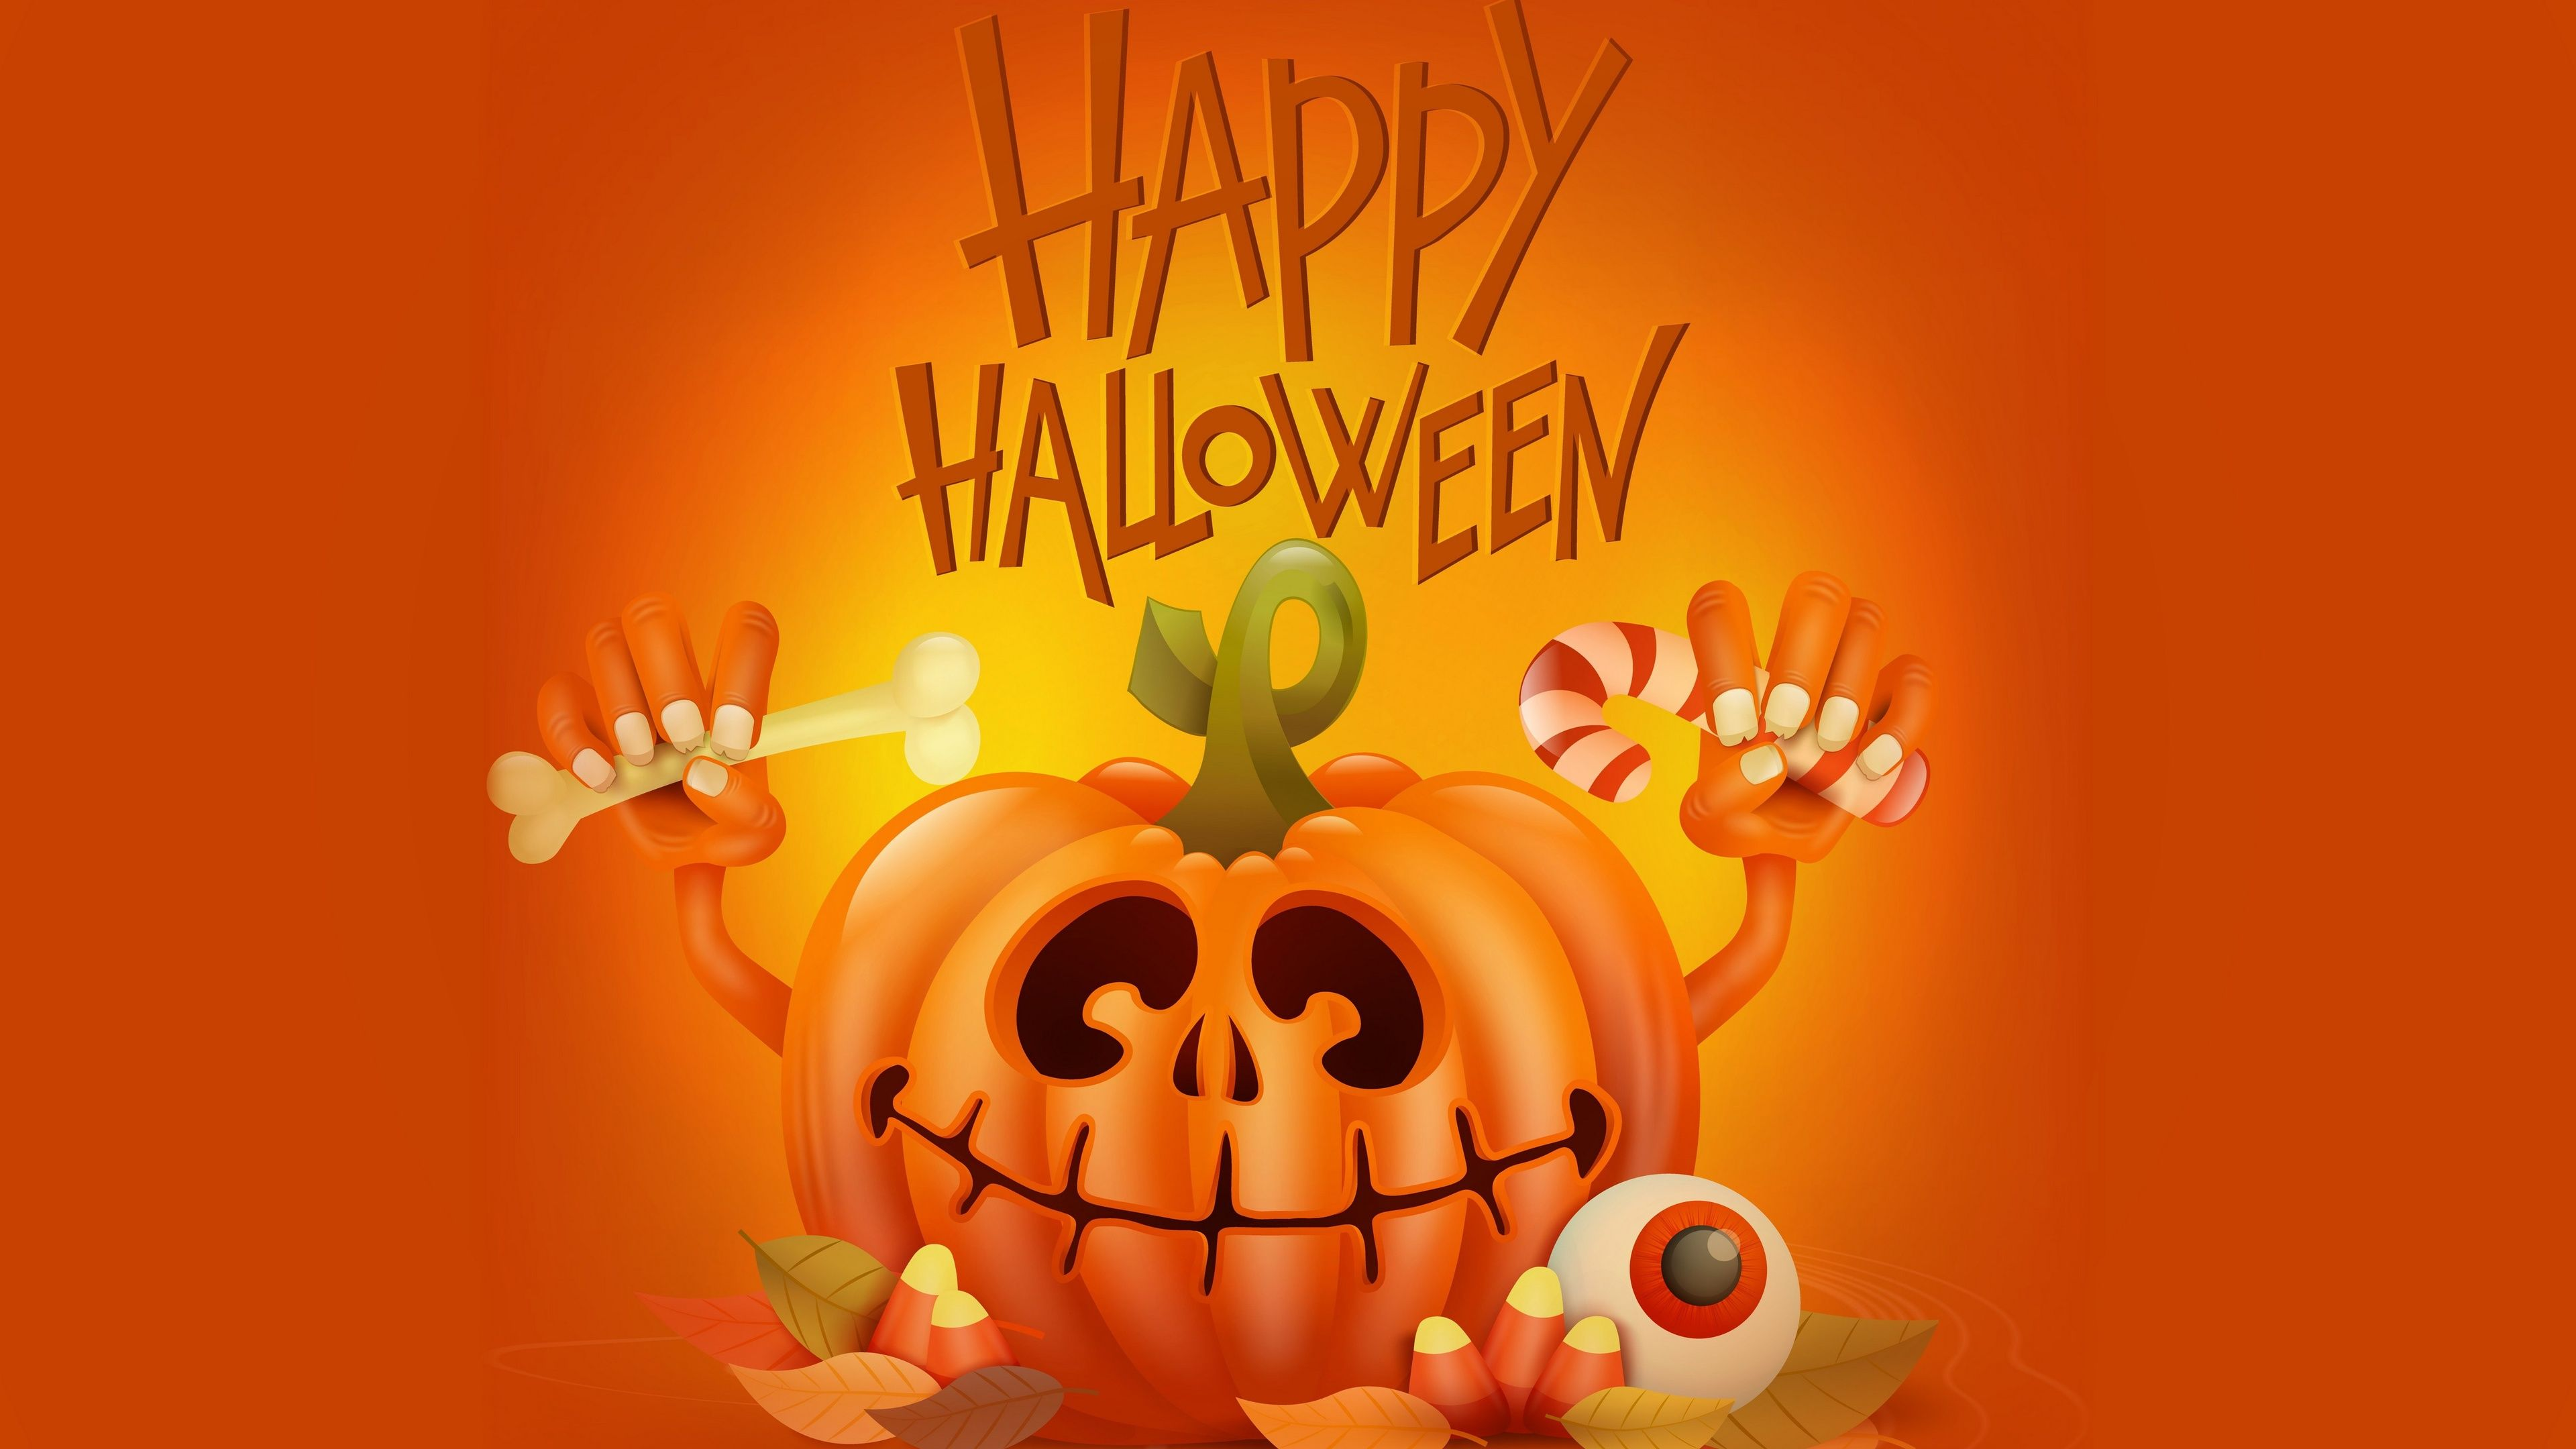 4k Happy Halloween Pumpkin Wallpapers Holidays Wallpapers Hd Wallpapers Halloween Wallpapers Celebr Pumpkin Wallpaper Holiday Wallpaper Halloween Wallpaper